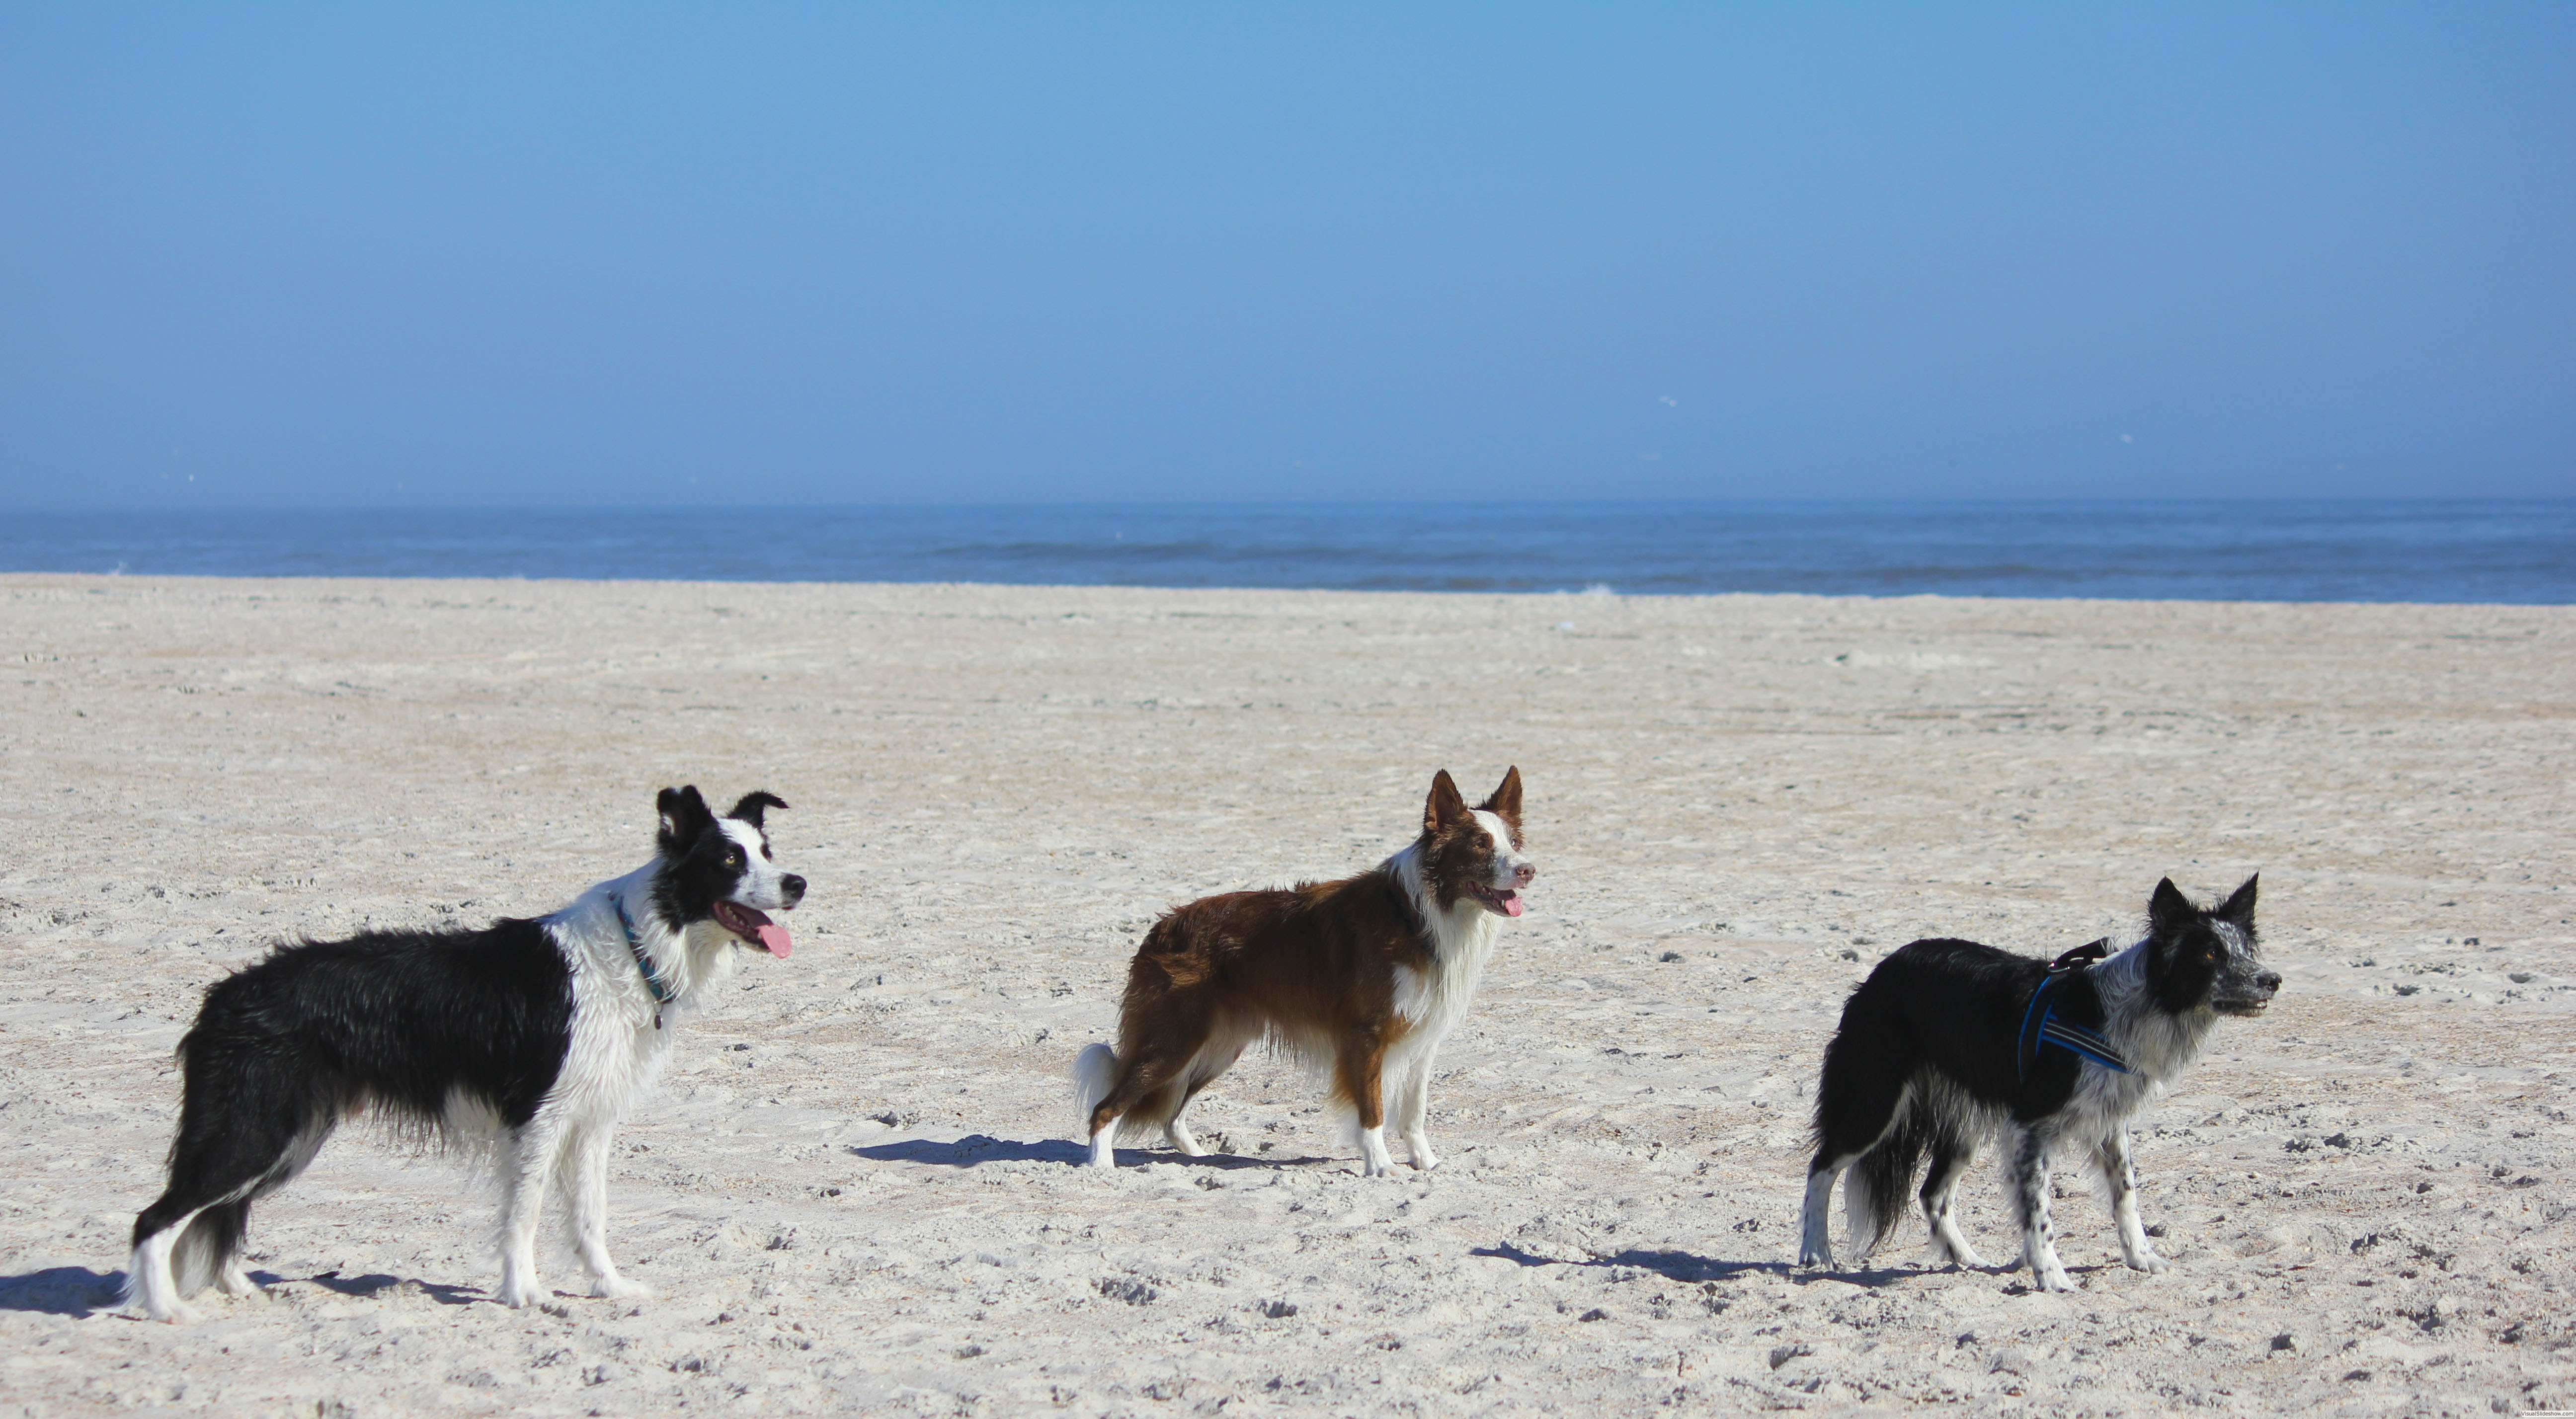 Fleet, Blitz and Rev playing ball on the beach. Photo take on St. Augustine Beach, Florida.